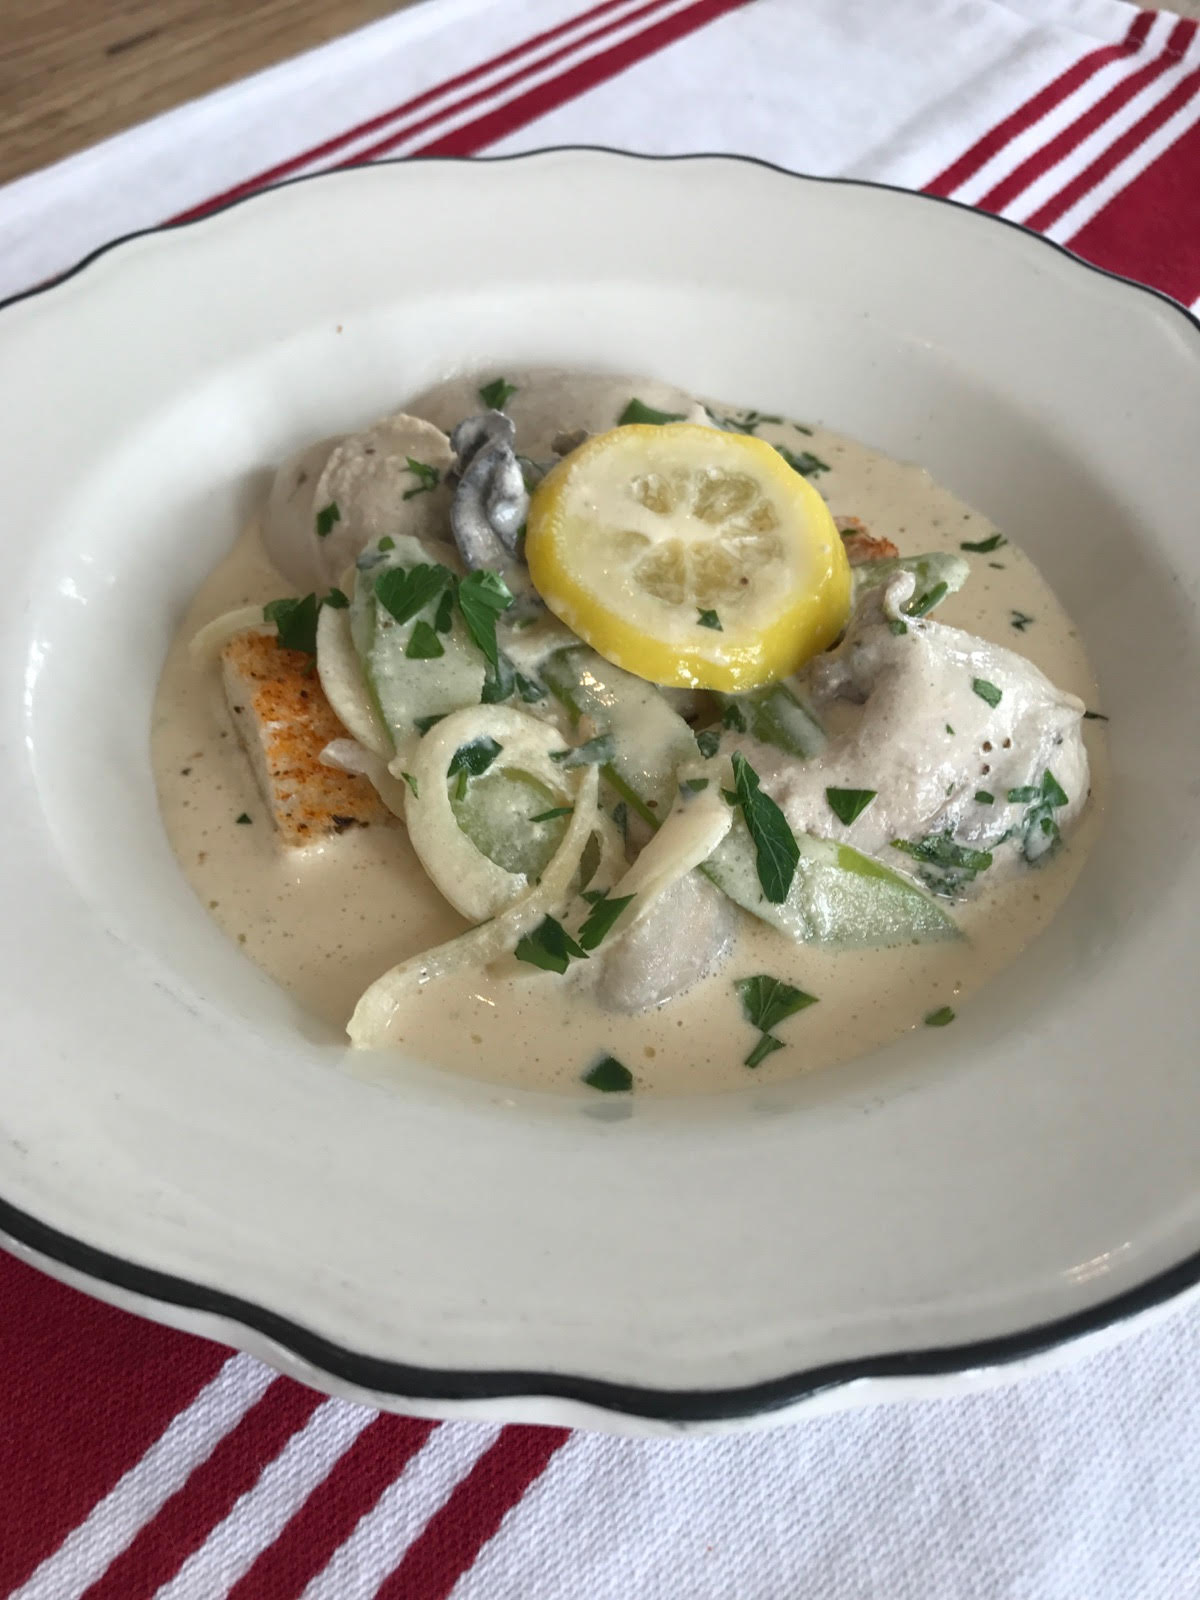 BLUECOAST'S OYSTER STEW